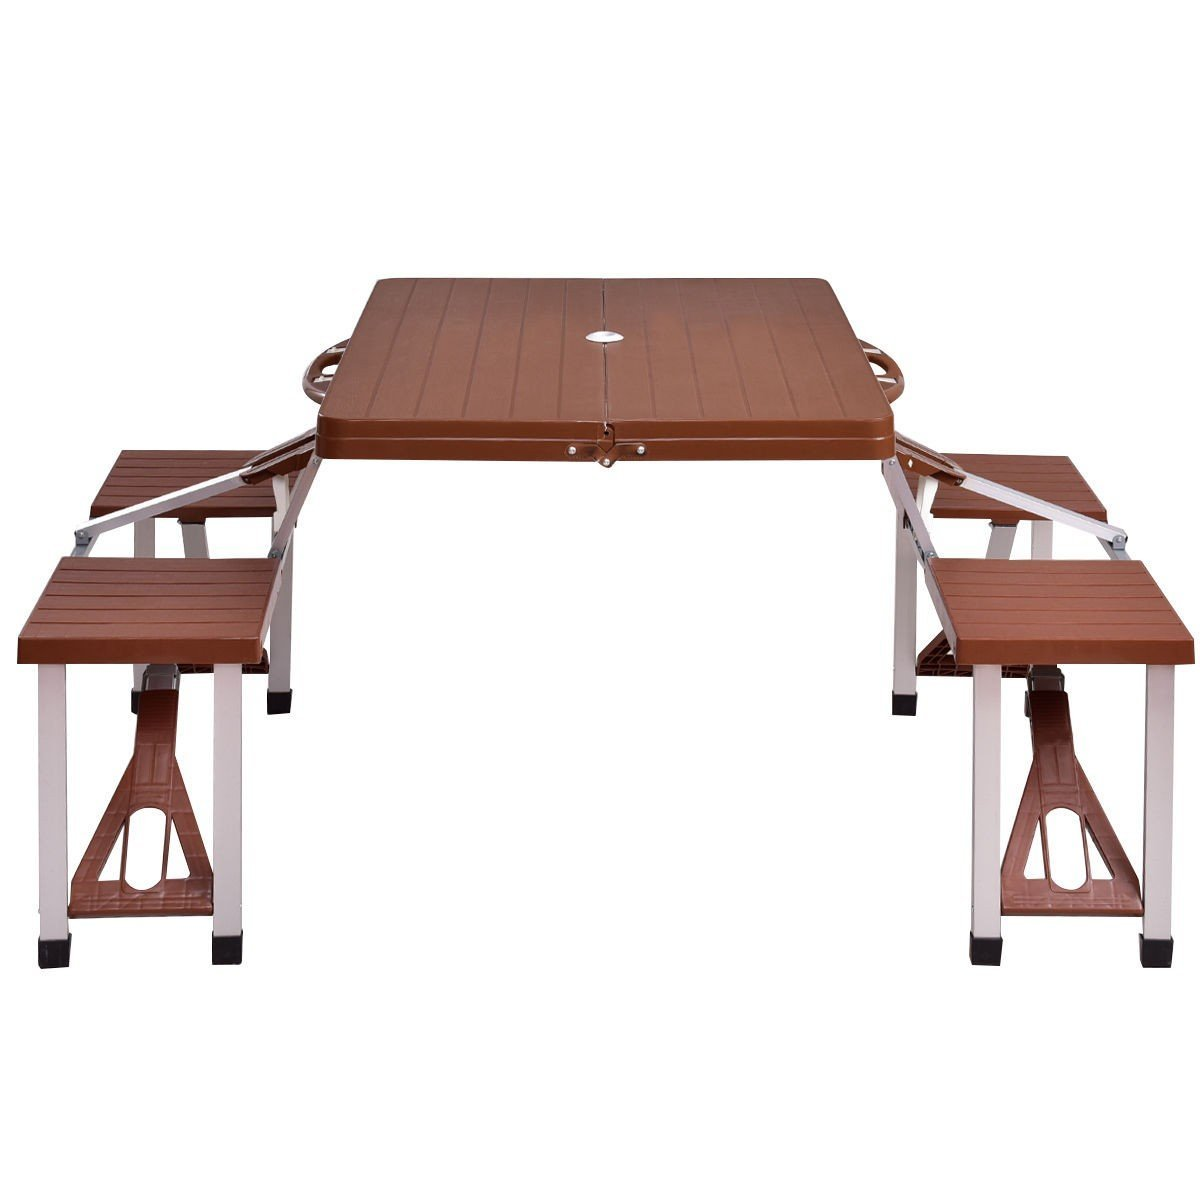 MD Group Picnic Table Outdoor Foldable Aluminum Bench Seats Lightweight Camping Portable Dining Table Set